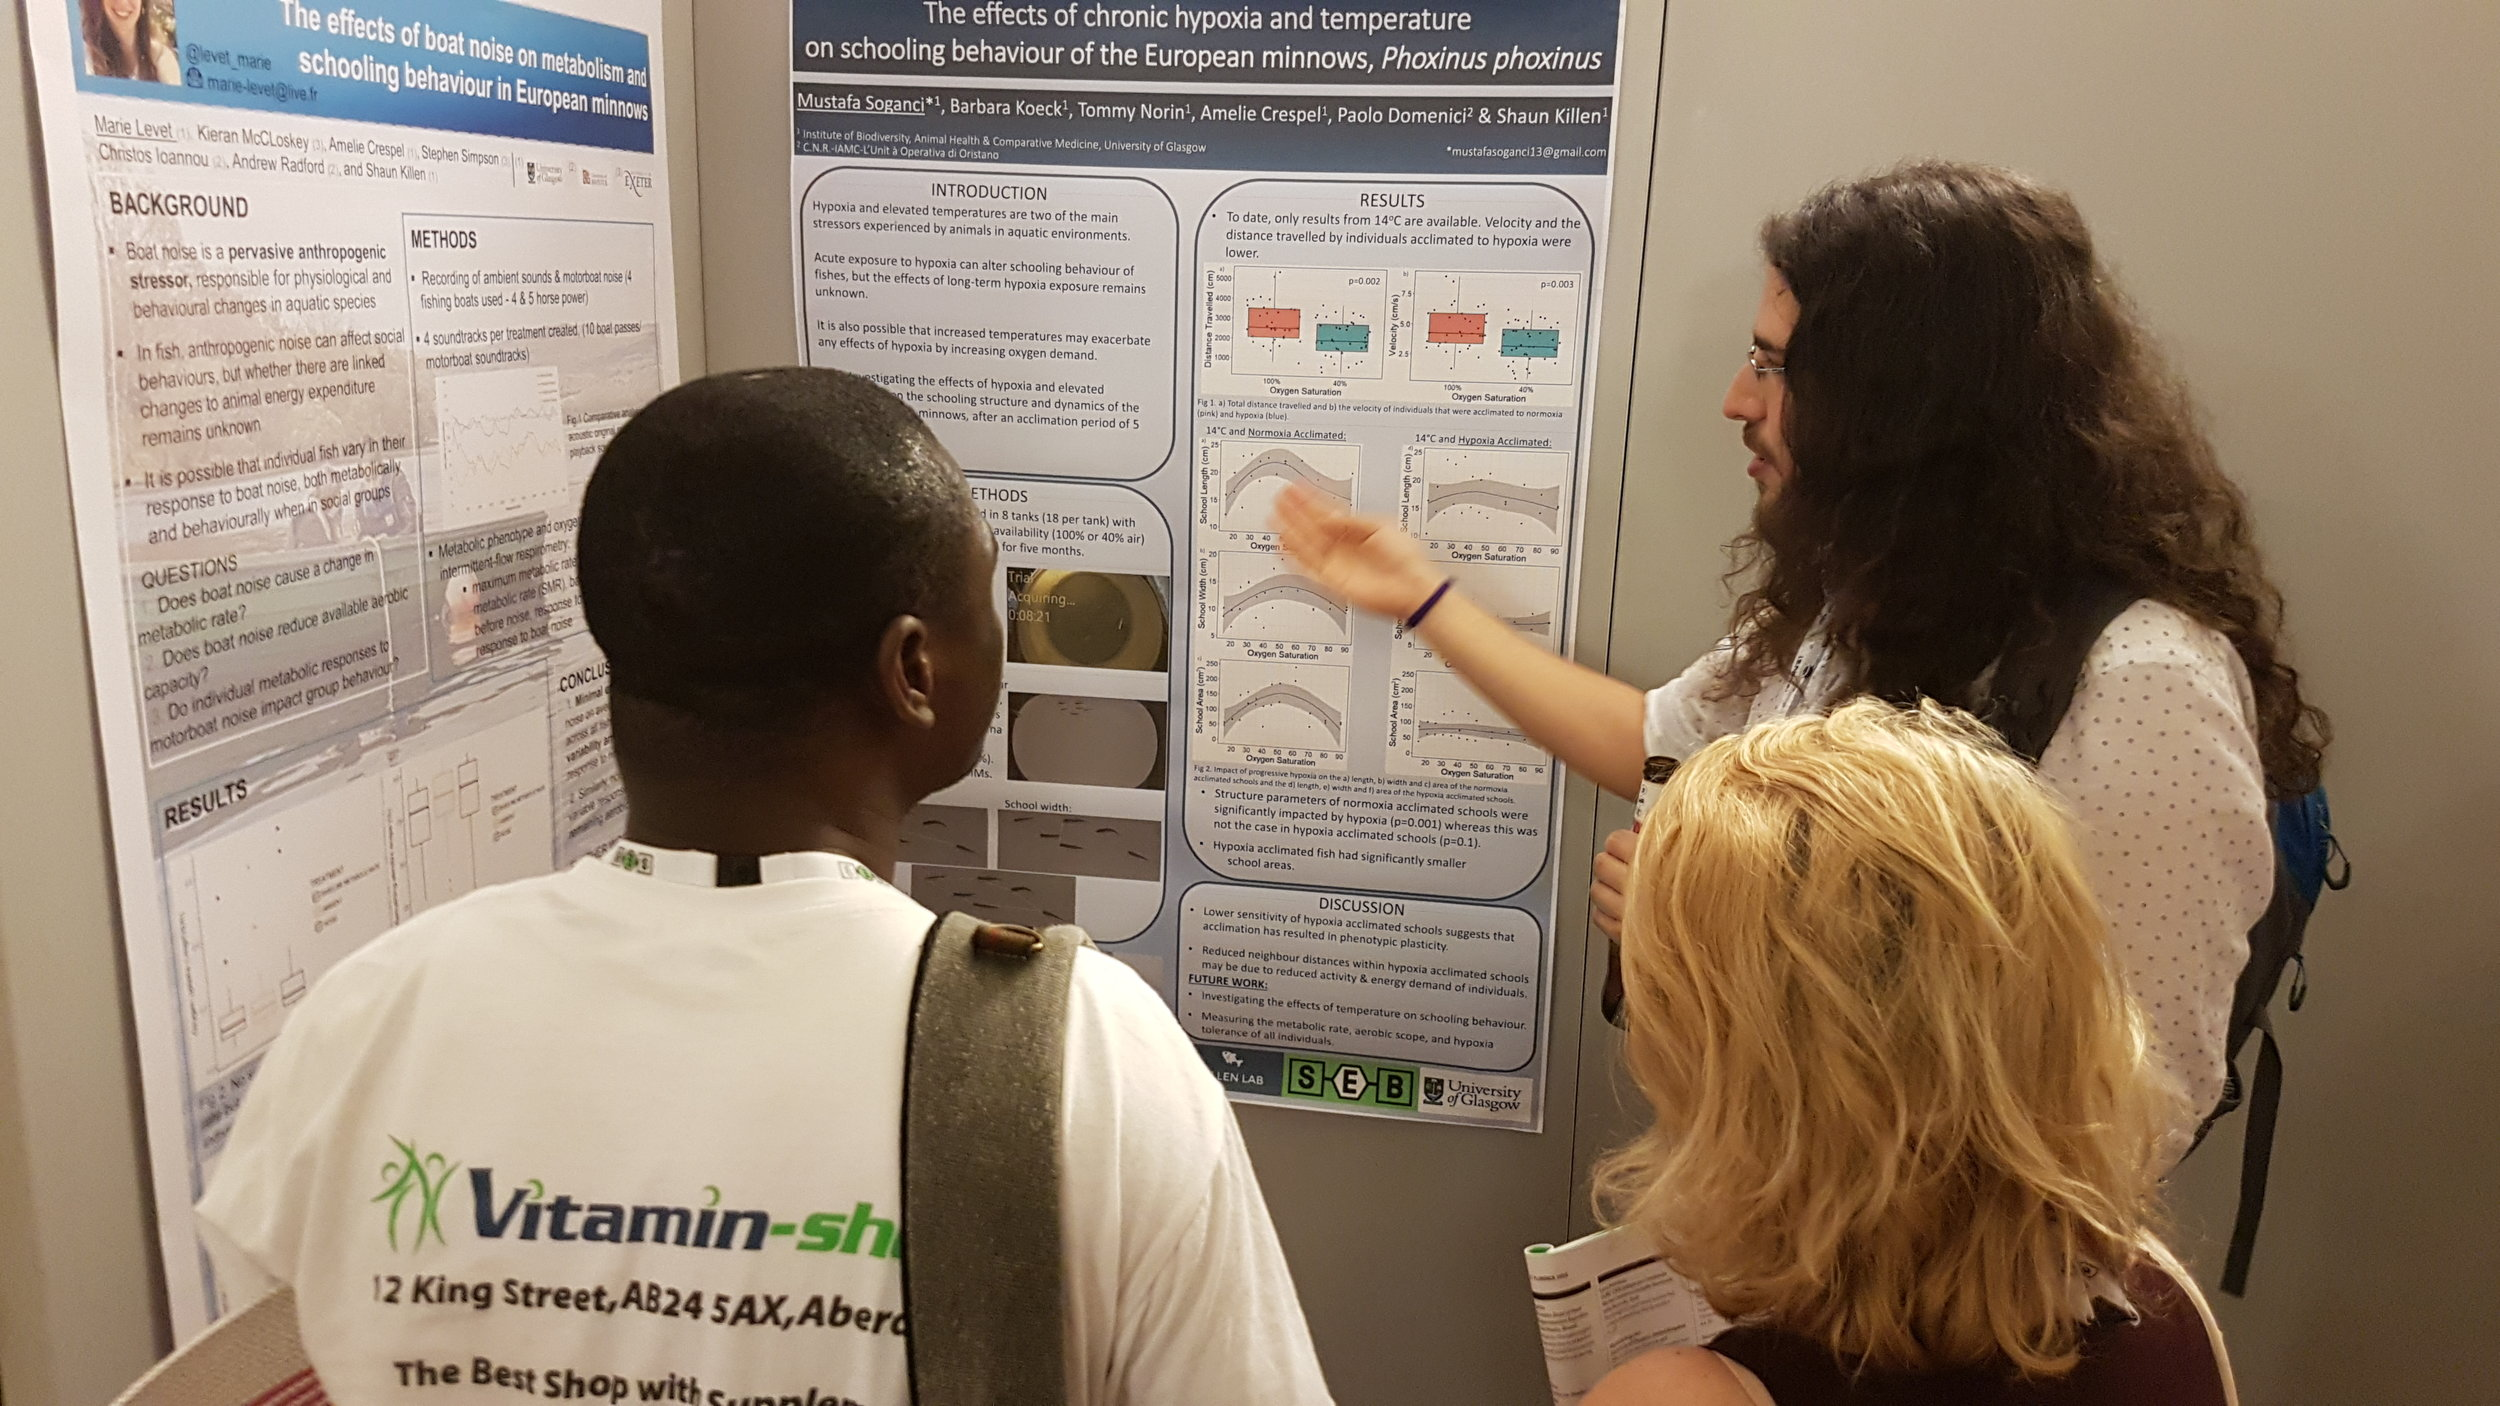 Mustafa Soganci with his poster on how hypoxia affects fish schooling behaviour.